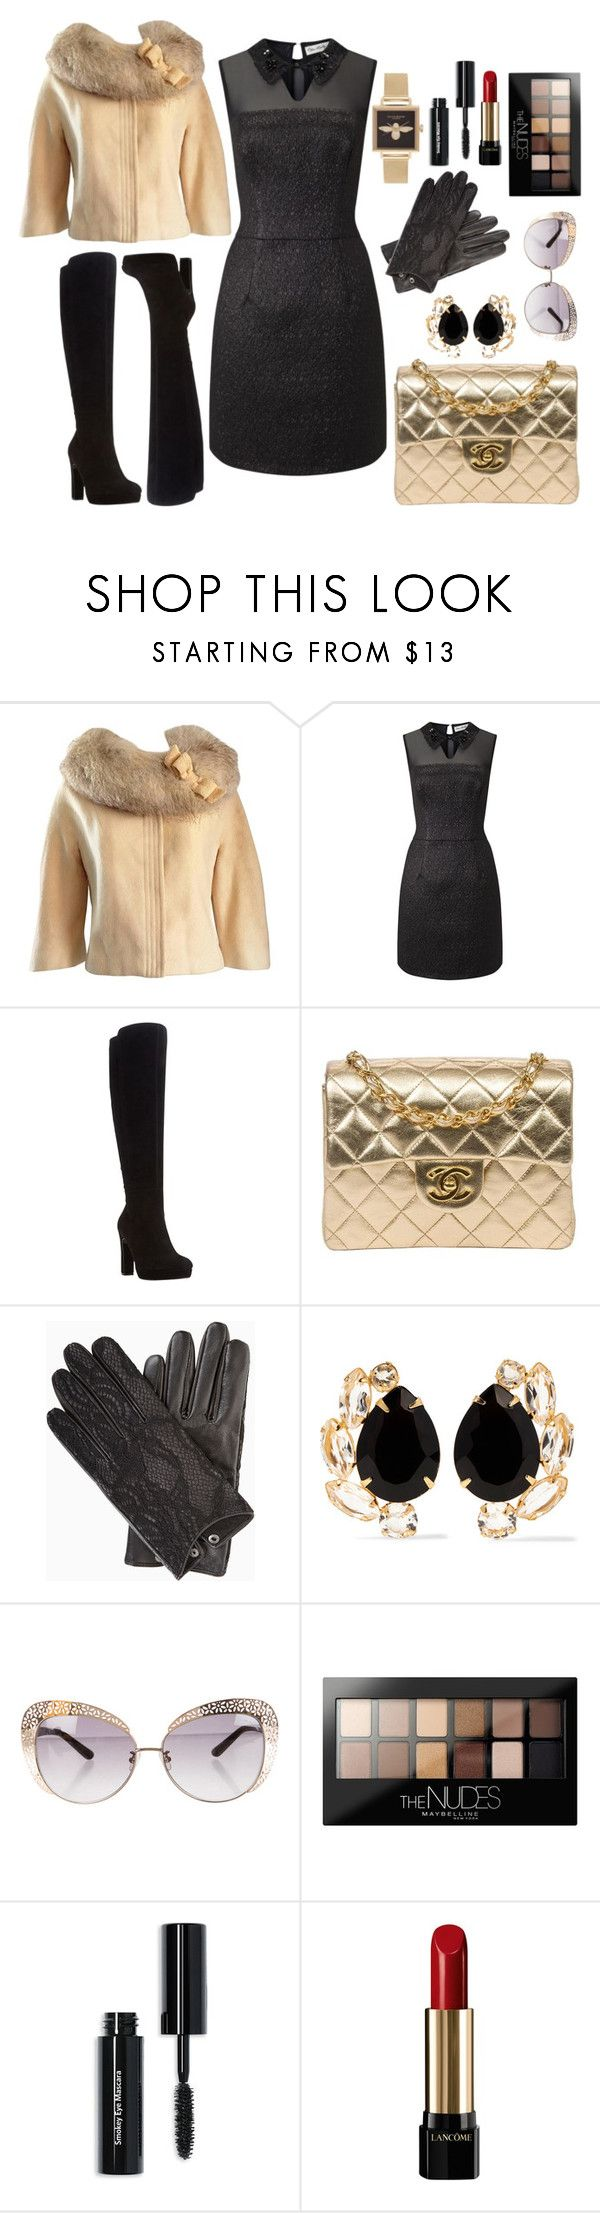 """Evening dress with platform boots"" by dianlanaakbar ❤ liked on Polyvore featuring Lilli Ann, Miss Selfridge, Dune, Chanel, BCBGMAXAZRIA, Bounkit, Maybelline, Bobbi Brown Cosmetics, Lancôme and Olivia Burton"